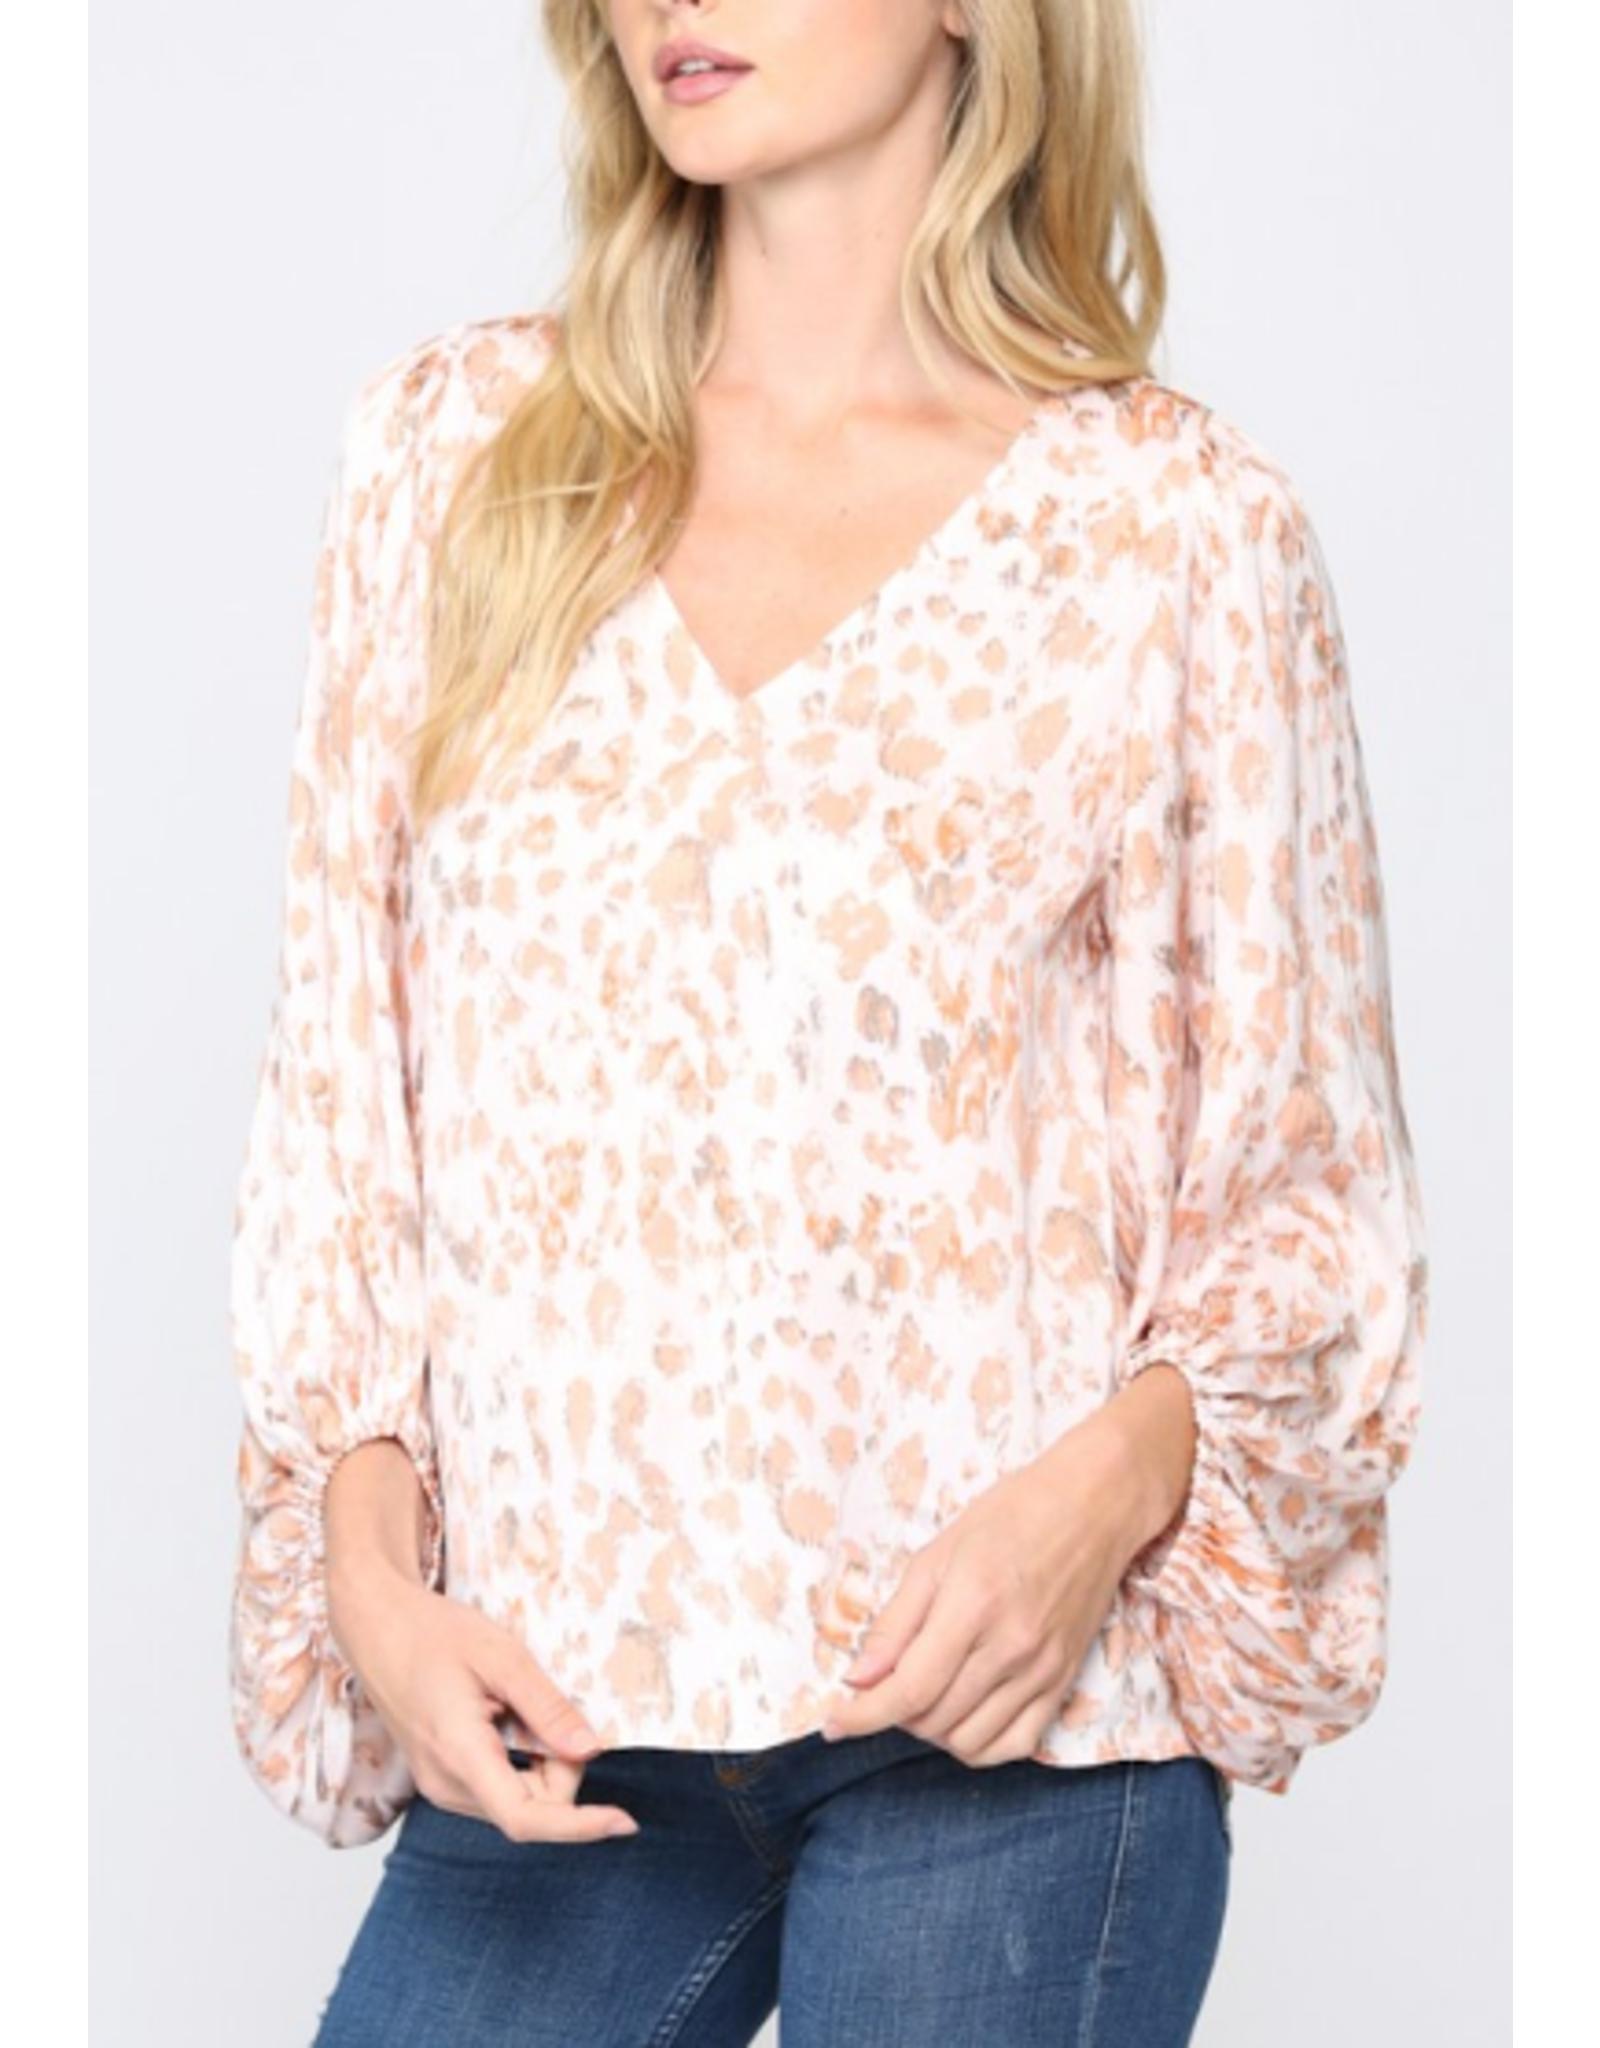 Leopard Bubble Sleeves Blouse - Coral